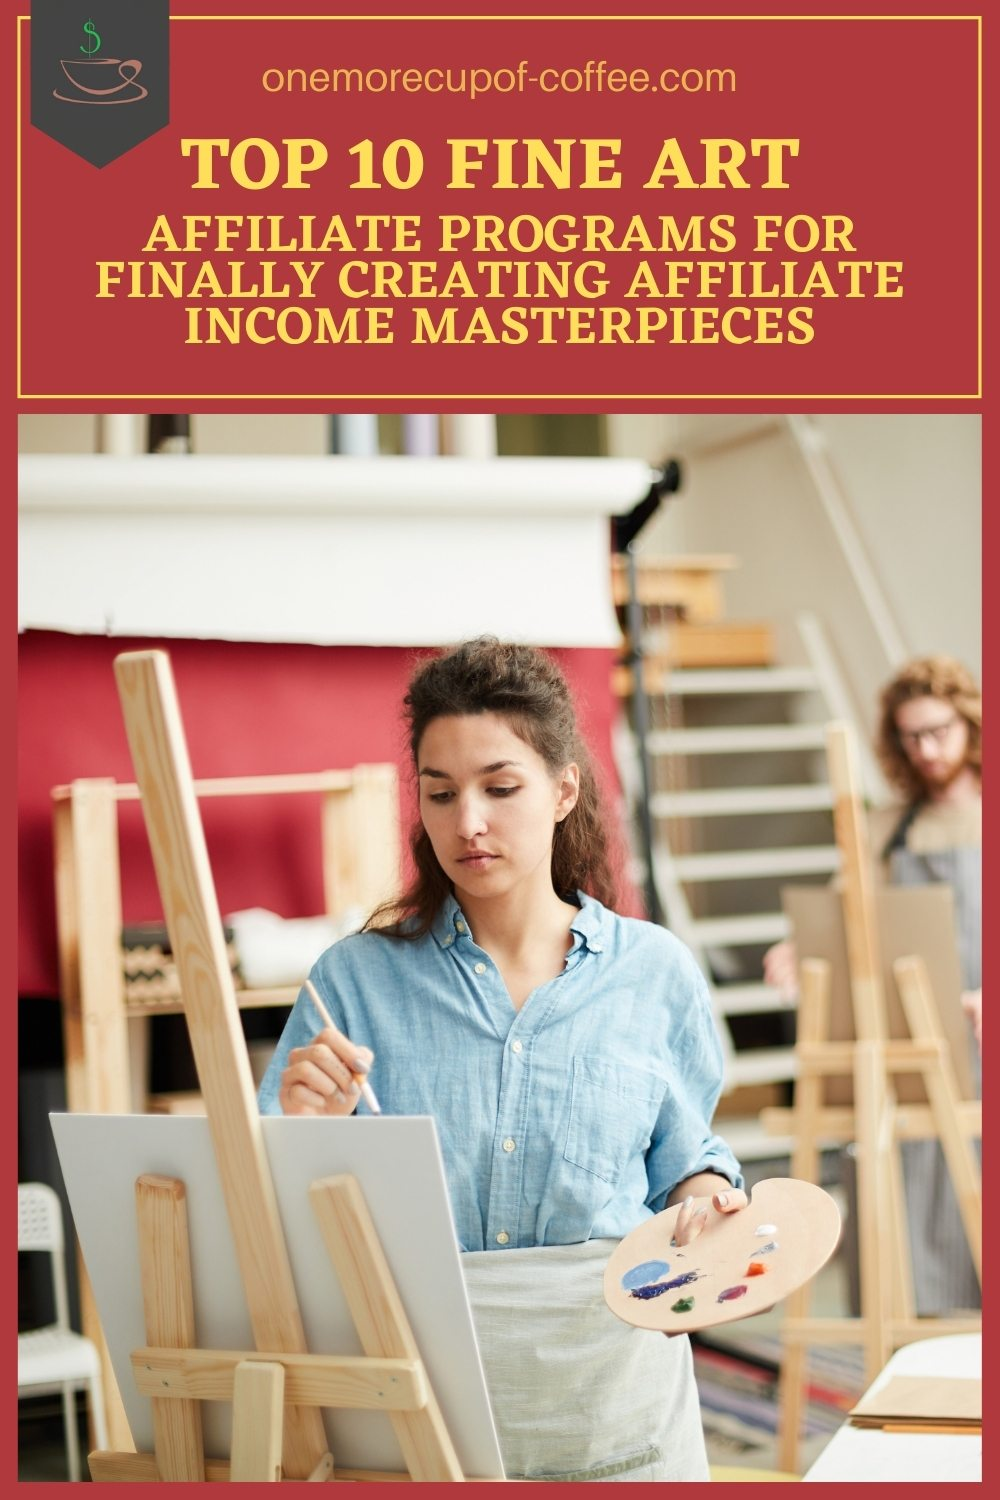 """female artist working on a painting in a studio; with text at the top in red banner """"Top 10 Fine Art Affiliate Programs For Finally Creating Affiliate Income Masterpieces"""""""